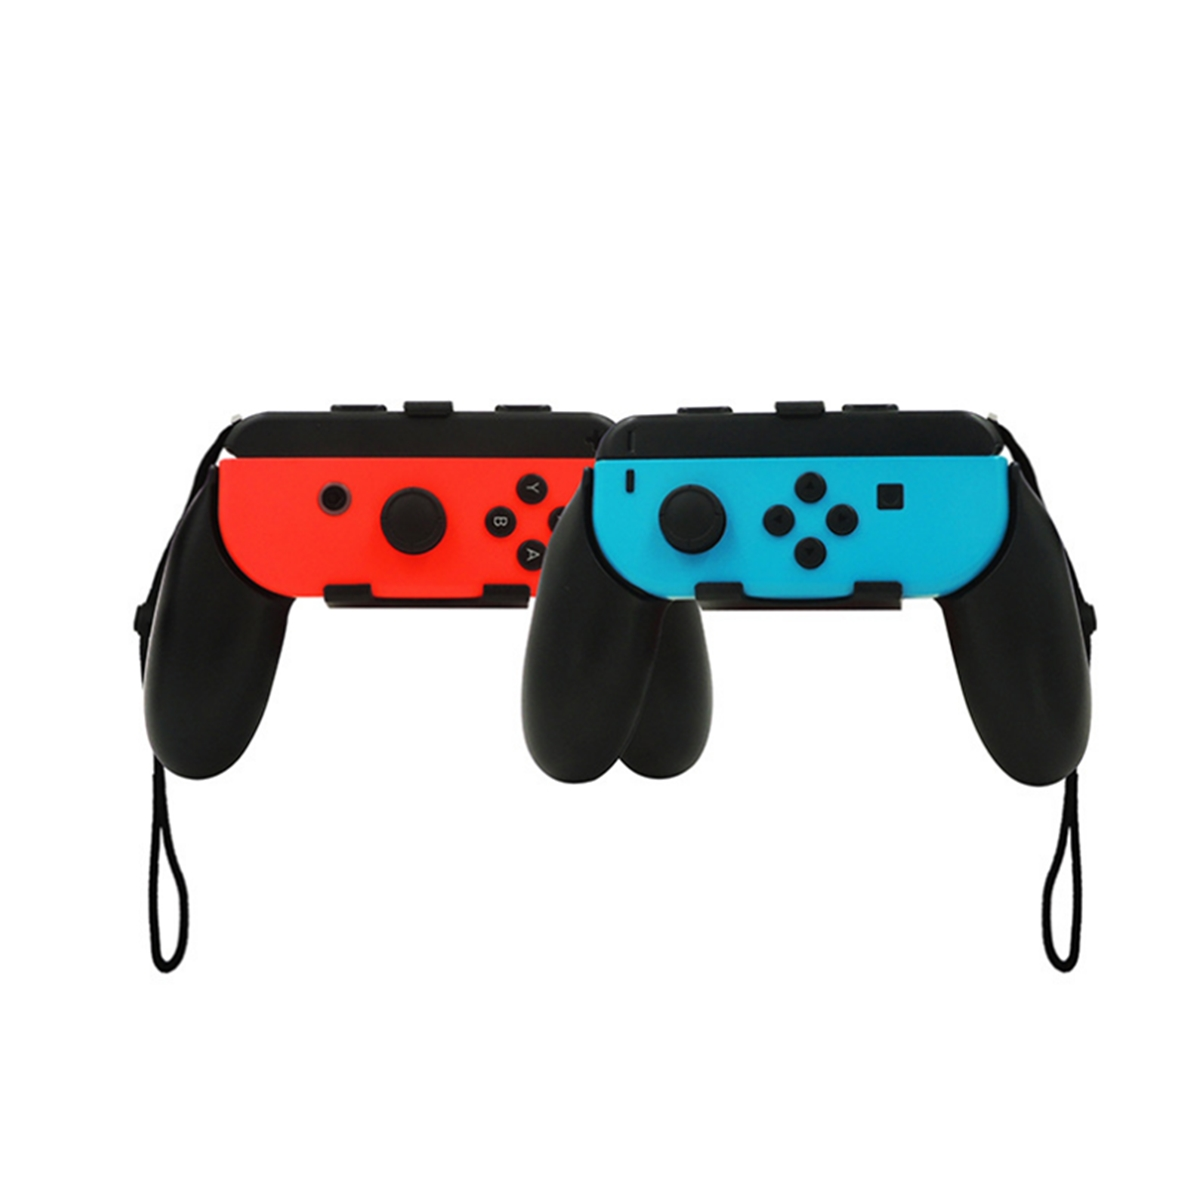 2 Pcs ABS Hand Grip Holder Stand Support for Nintendo Switch Joy-Con Controller